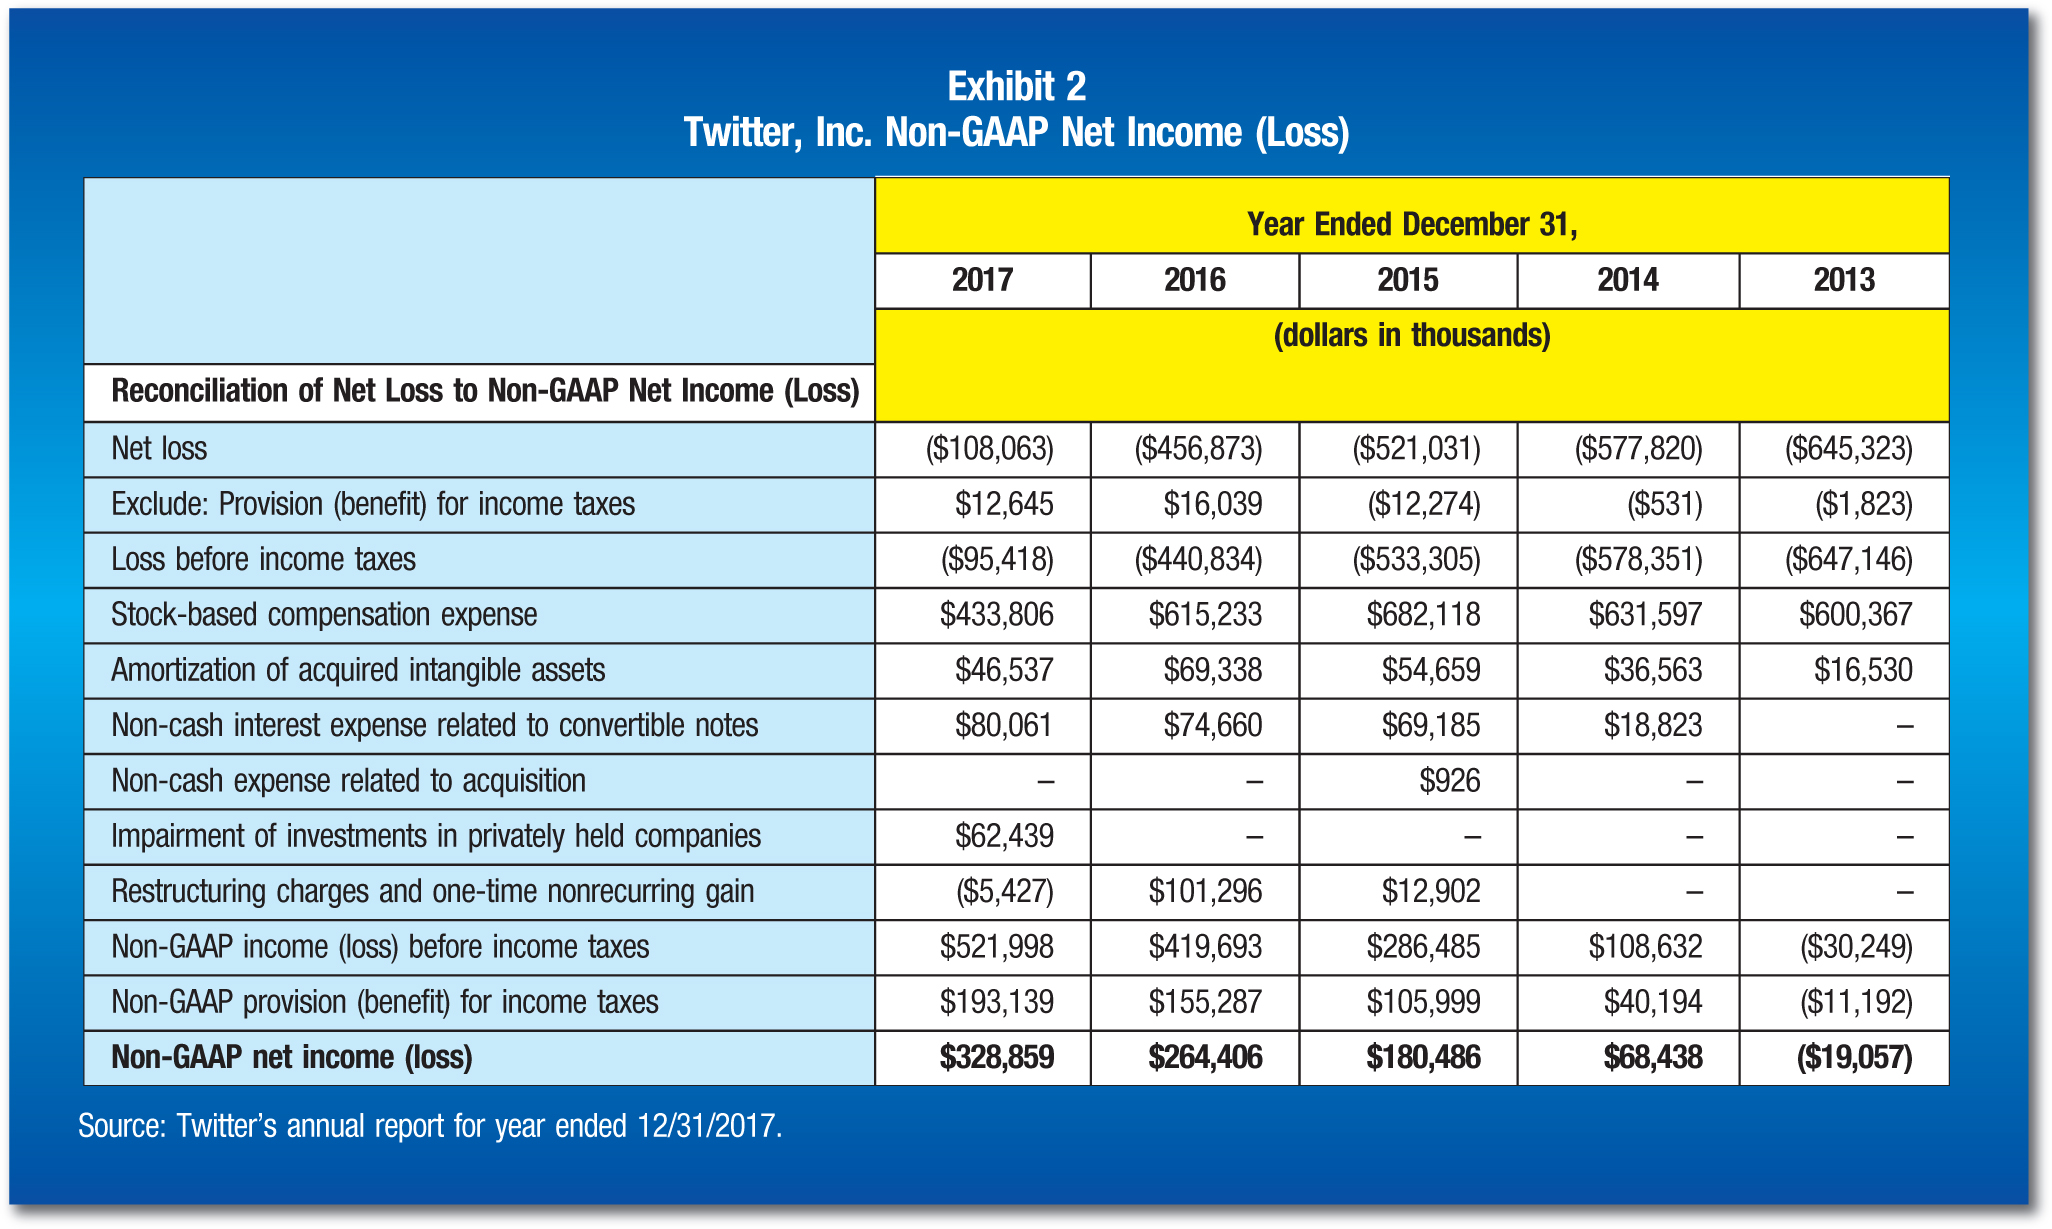 Year Ended December 31, 2017; 2016; 2015; 2014; 2013 Reconciliation of Net Loss to Non-GAAP Net Income (Loss); (dollars in thousands) Net loss; ($108,063); ($456,873); ($521,031); ($577,820); ($645,323) Exclude: Provision (benefit) for income taxes; $12,645; $16,039; ($12,274); ($531); ($1,823) Loss before income taxes; ($95,418); ($440,834); ($533,305); ($578,351); ($647,146) Stock-based compensation expense; $433,806; $615,233; $682,118; $631,597; $600,367 Amortization of acquired intangible assets; $46,537; $69,338; $54,659; $36,563; $16,530 Non-cash interest expense related to convertible notes; $80,061; $74,660; $69,185; $18,823; – Non-cash expense related to acquisition; –; –; $926; –; – Impairment of investments in privately held companies; $62,439; –; –; –; – Restructuring charges and one-time nonrecurring gain; ($5,427); $101,296; $12,902; –; – Non-GAAP income (loss) before income taxes; $521,998; $419,693; $286,485; $108,632; ($30,249) Non-GAAP provision (benefit) for income taxes; $193,139; $155,287; $105,999; $40,194; ($11,192) Non-GAAP net income (loss); $328,859; $264,406; $180,486; $68,438; ($19,057) Source: Twitter's annual report for year ended 12/31/2017.